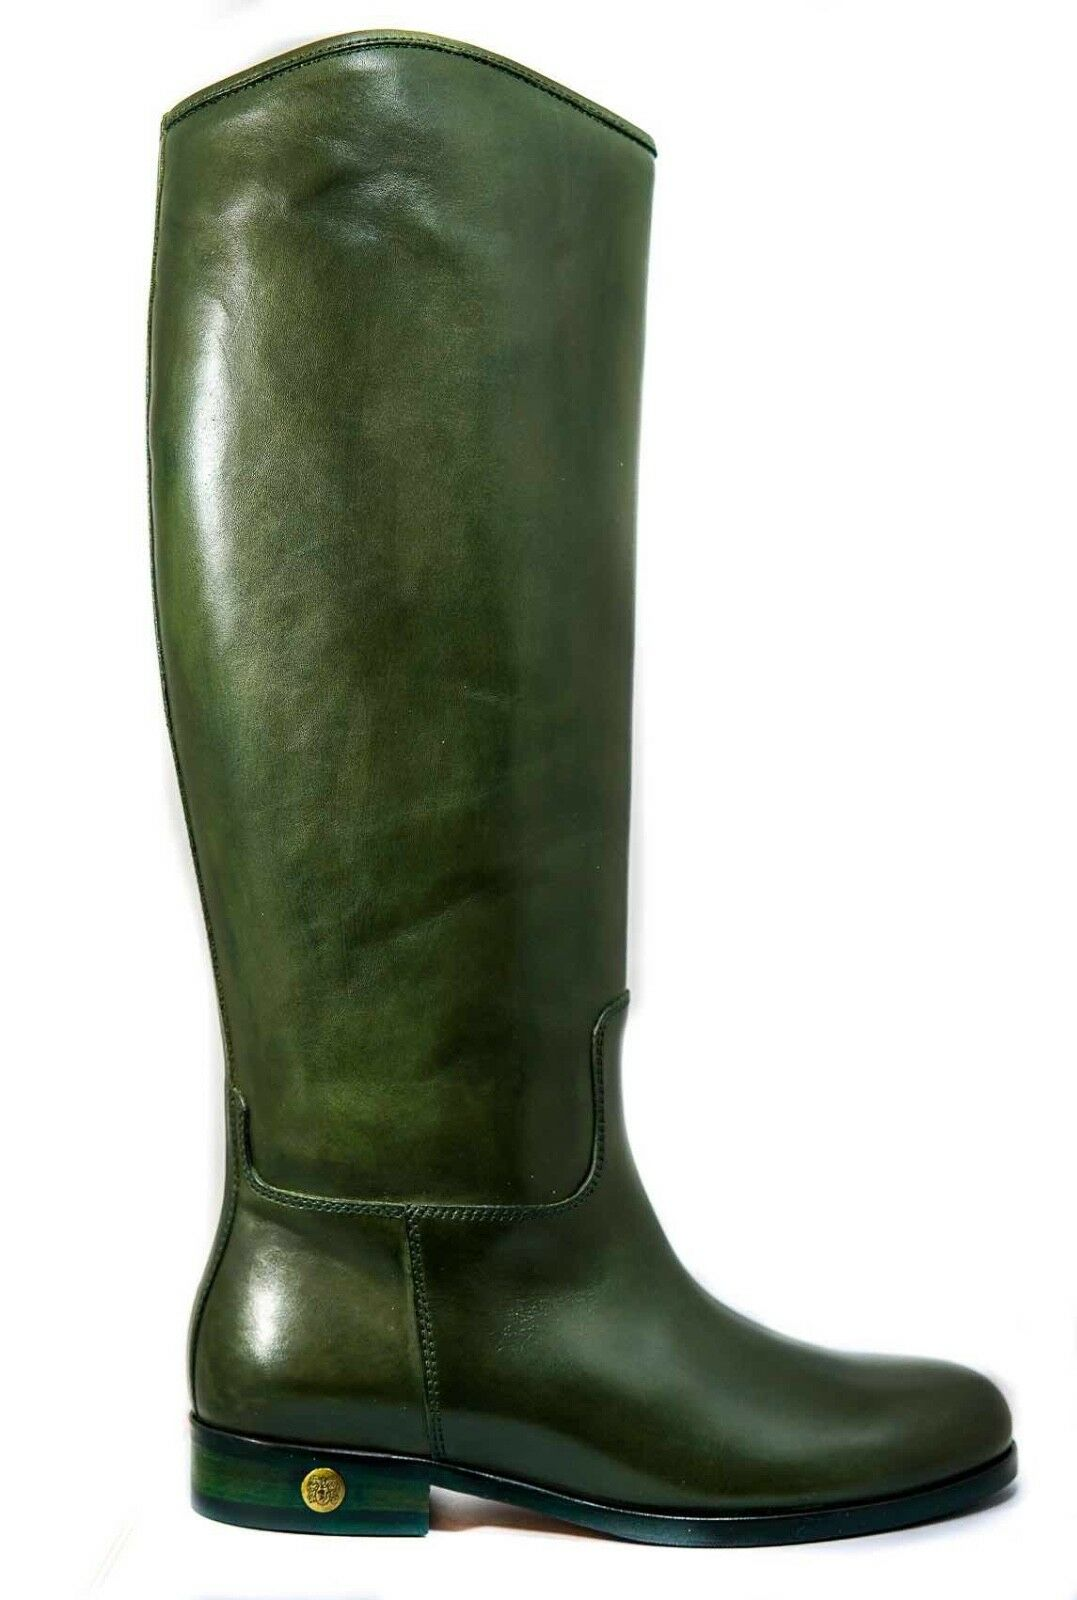 New New New in Box Bruno Magli Gouin Green Ladies Leather Boots 8c8505